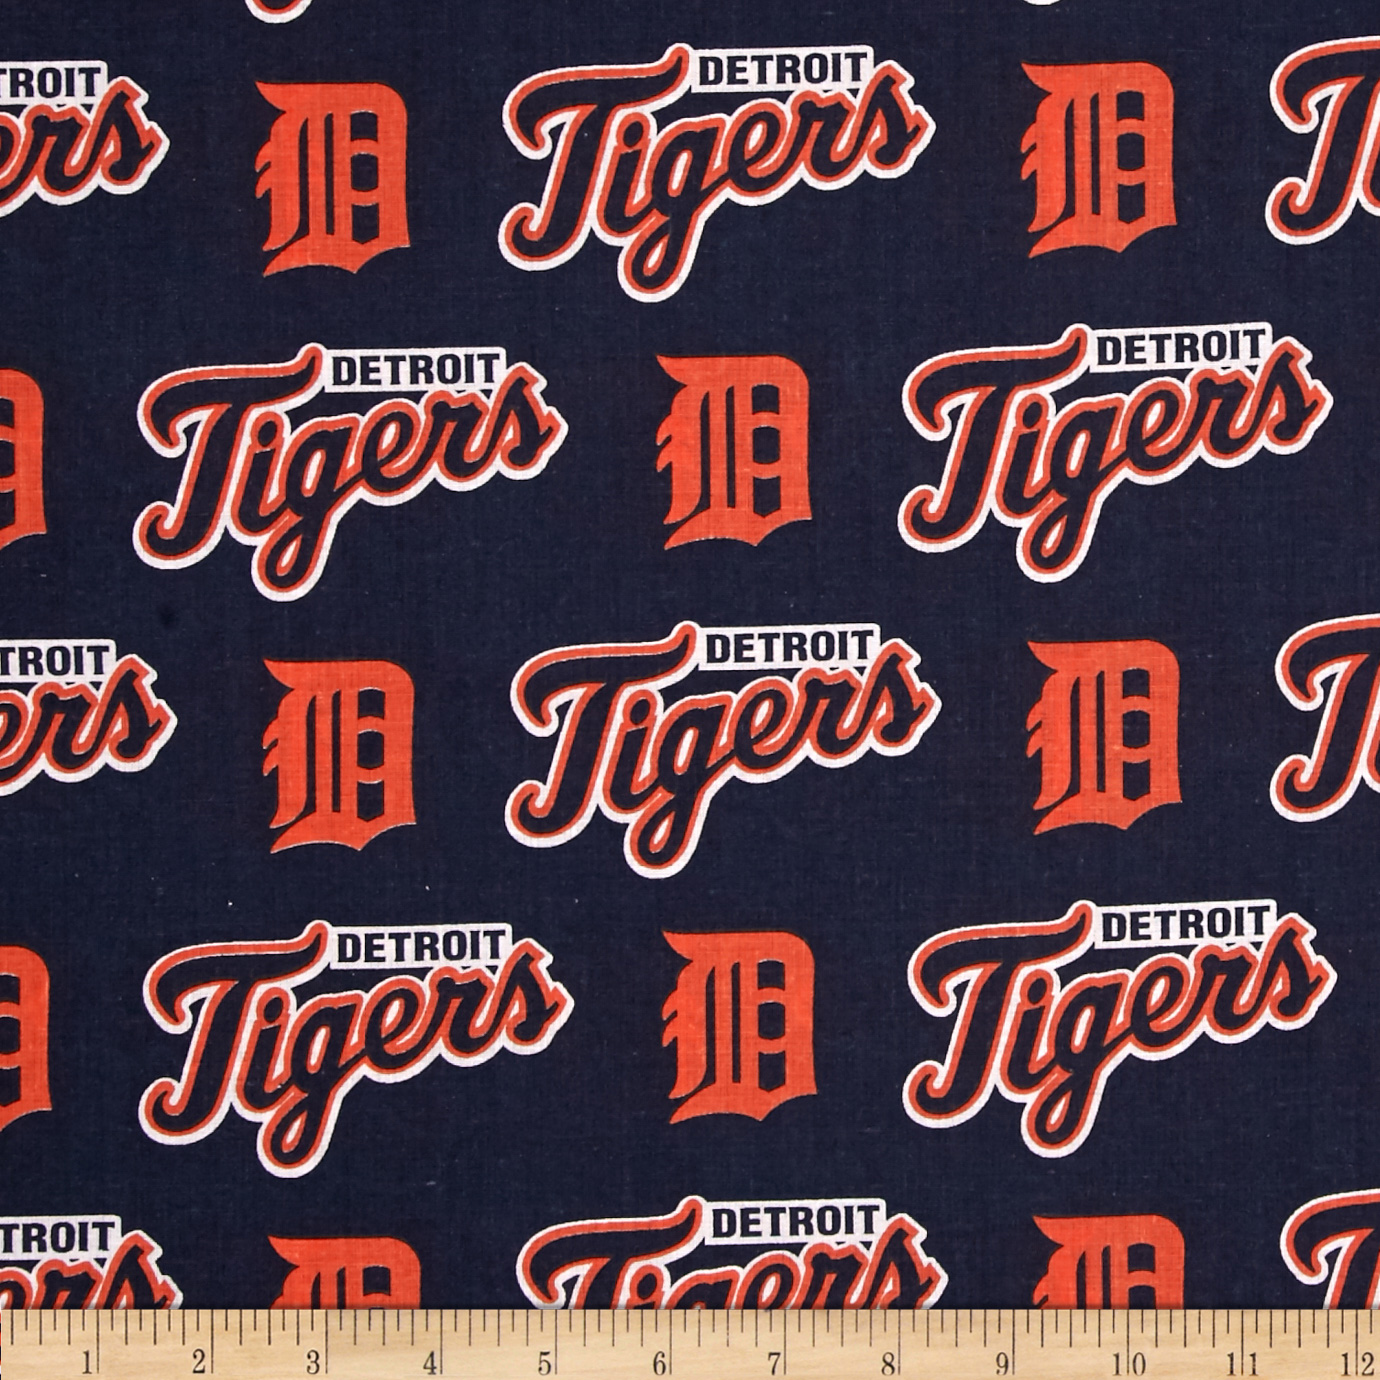 MLB Cotton Broadcloth Detroit Tigers Orange/Navy Fabric by Fabric Traditions in USA